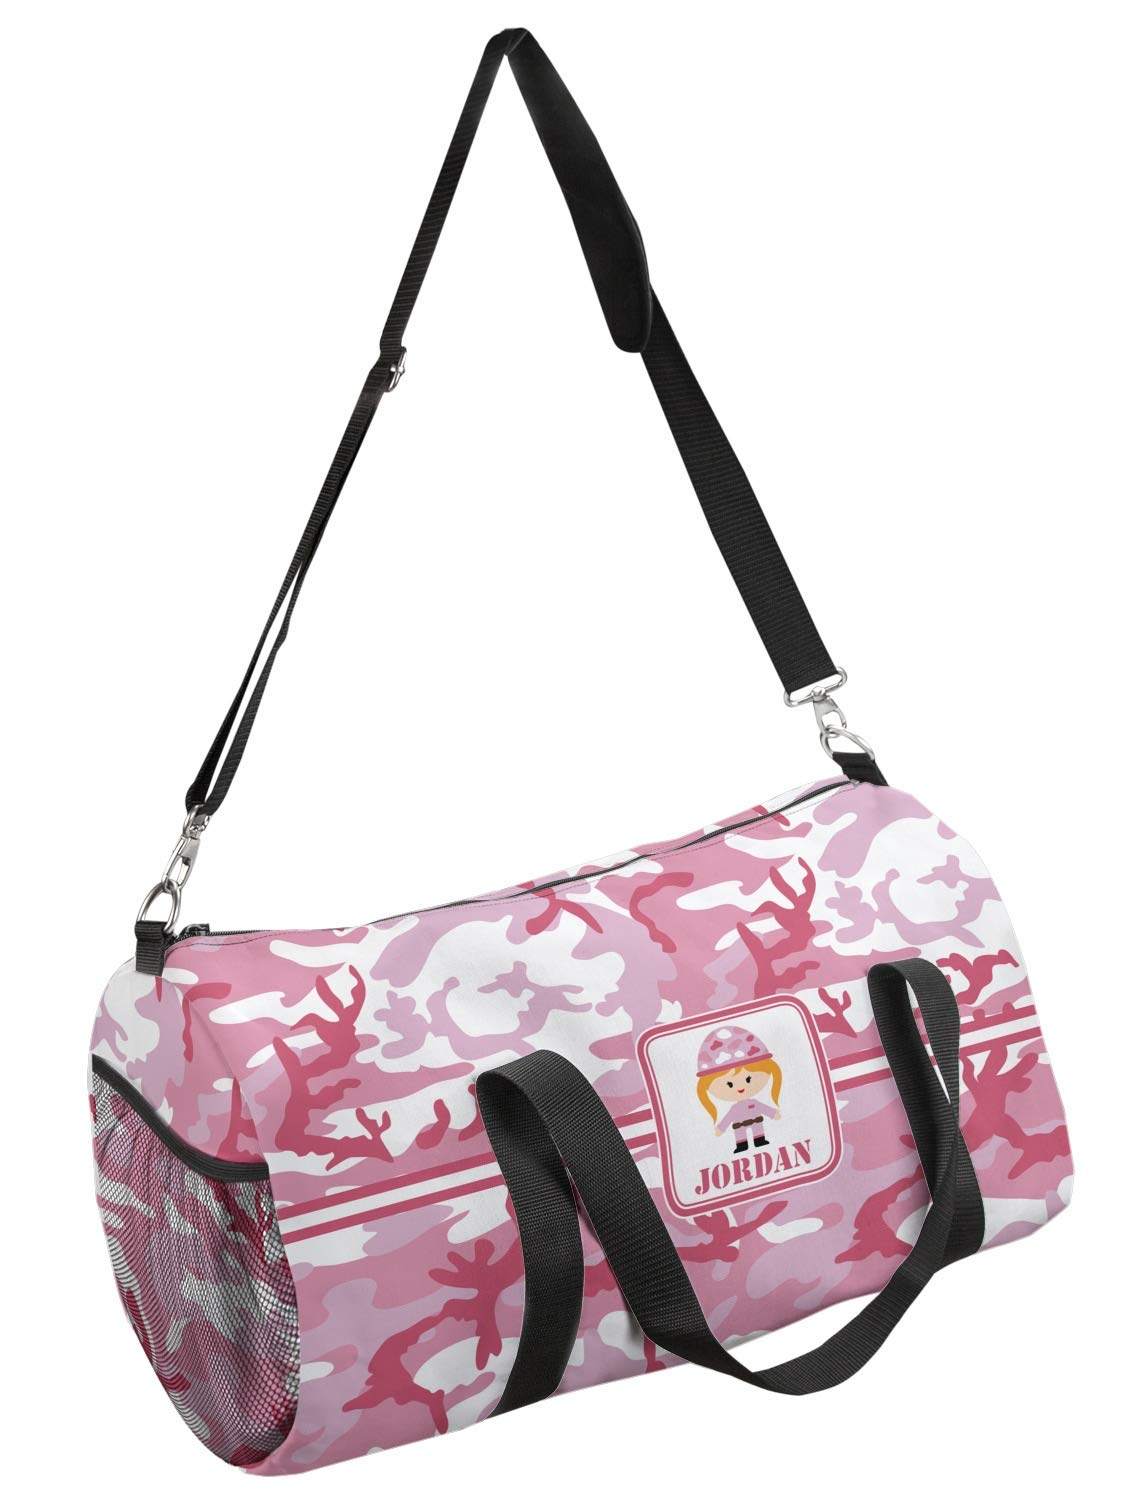 Multiple Sizes YouCustomizeIt Pink Camo Duffel Bag Personalized